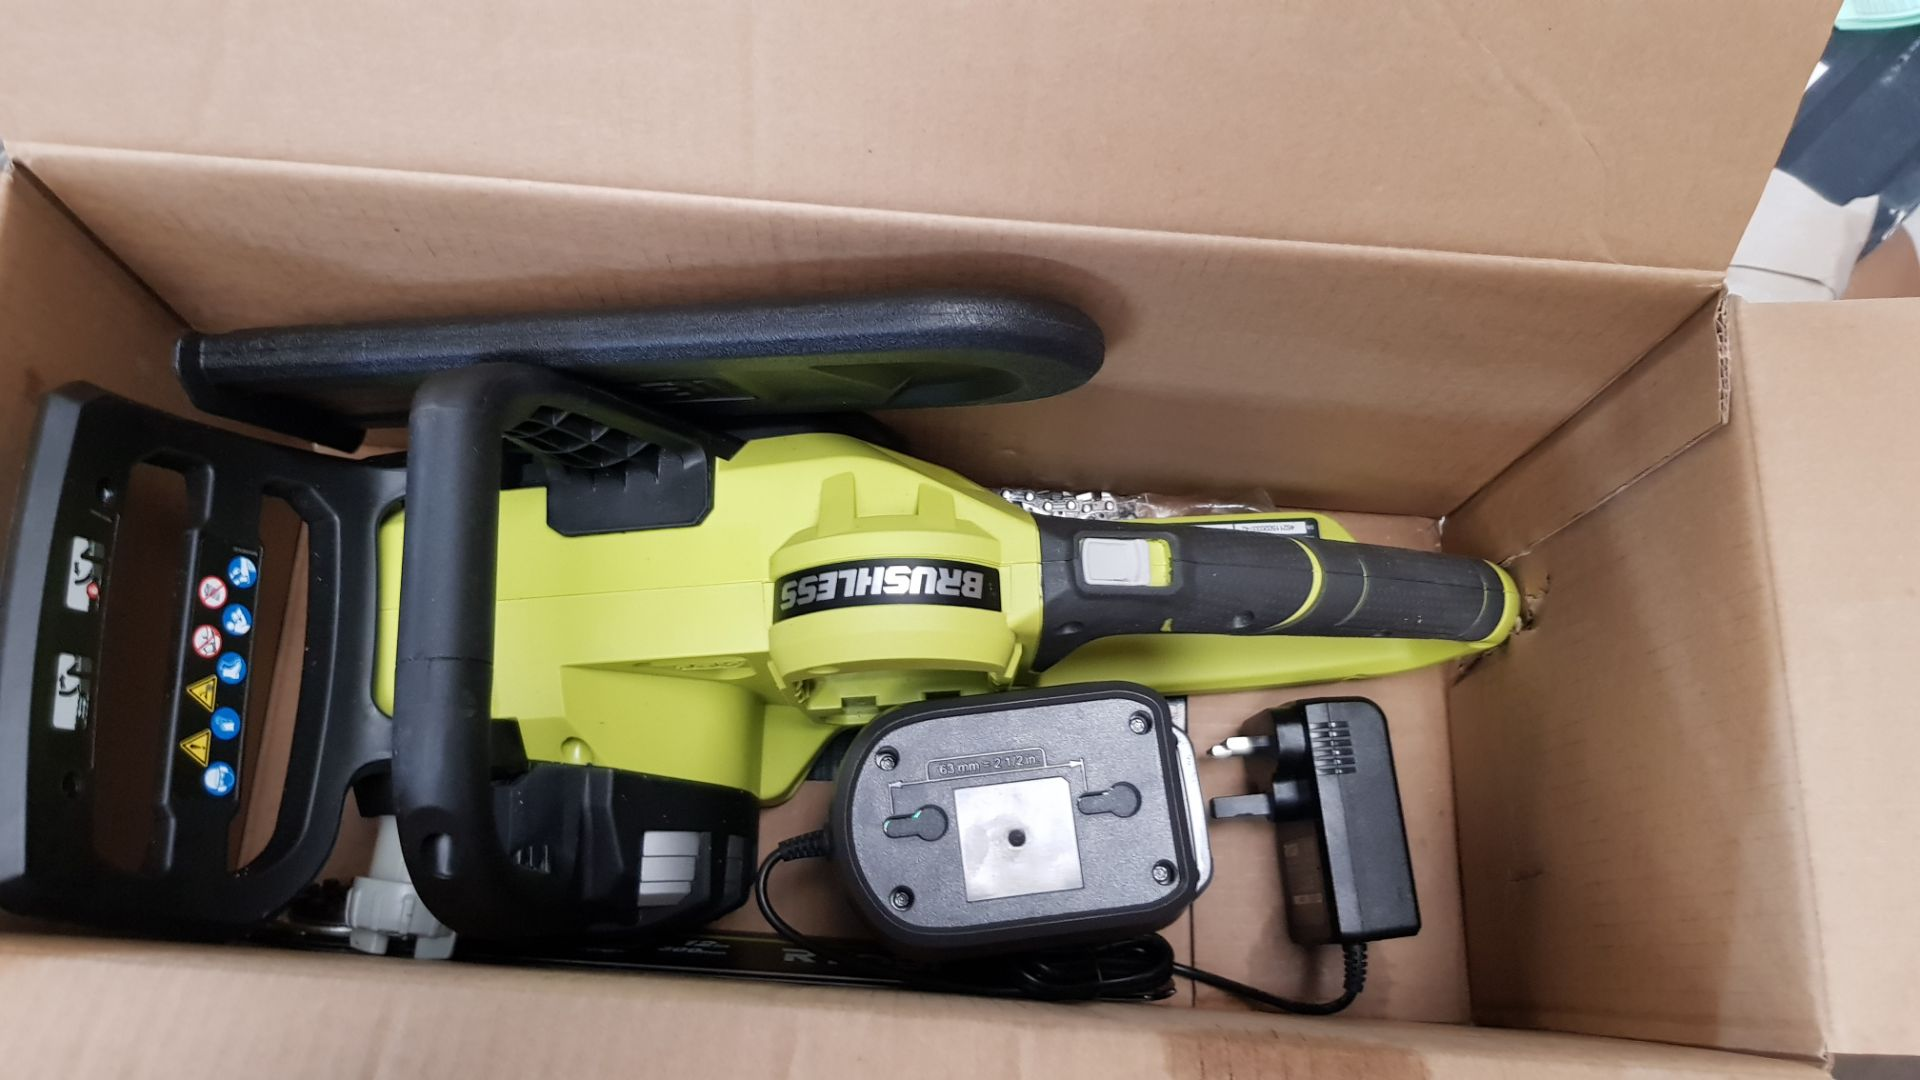 (P9) 1x Ryobi One+ Brushless 18V Cordless Chainsaw RRP £160. (With Battery & Charger) - Image 5 of 8